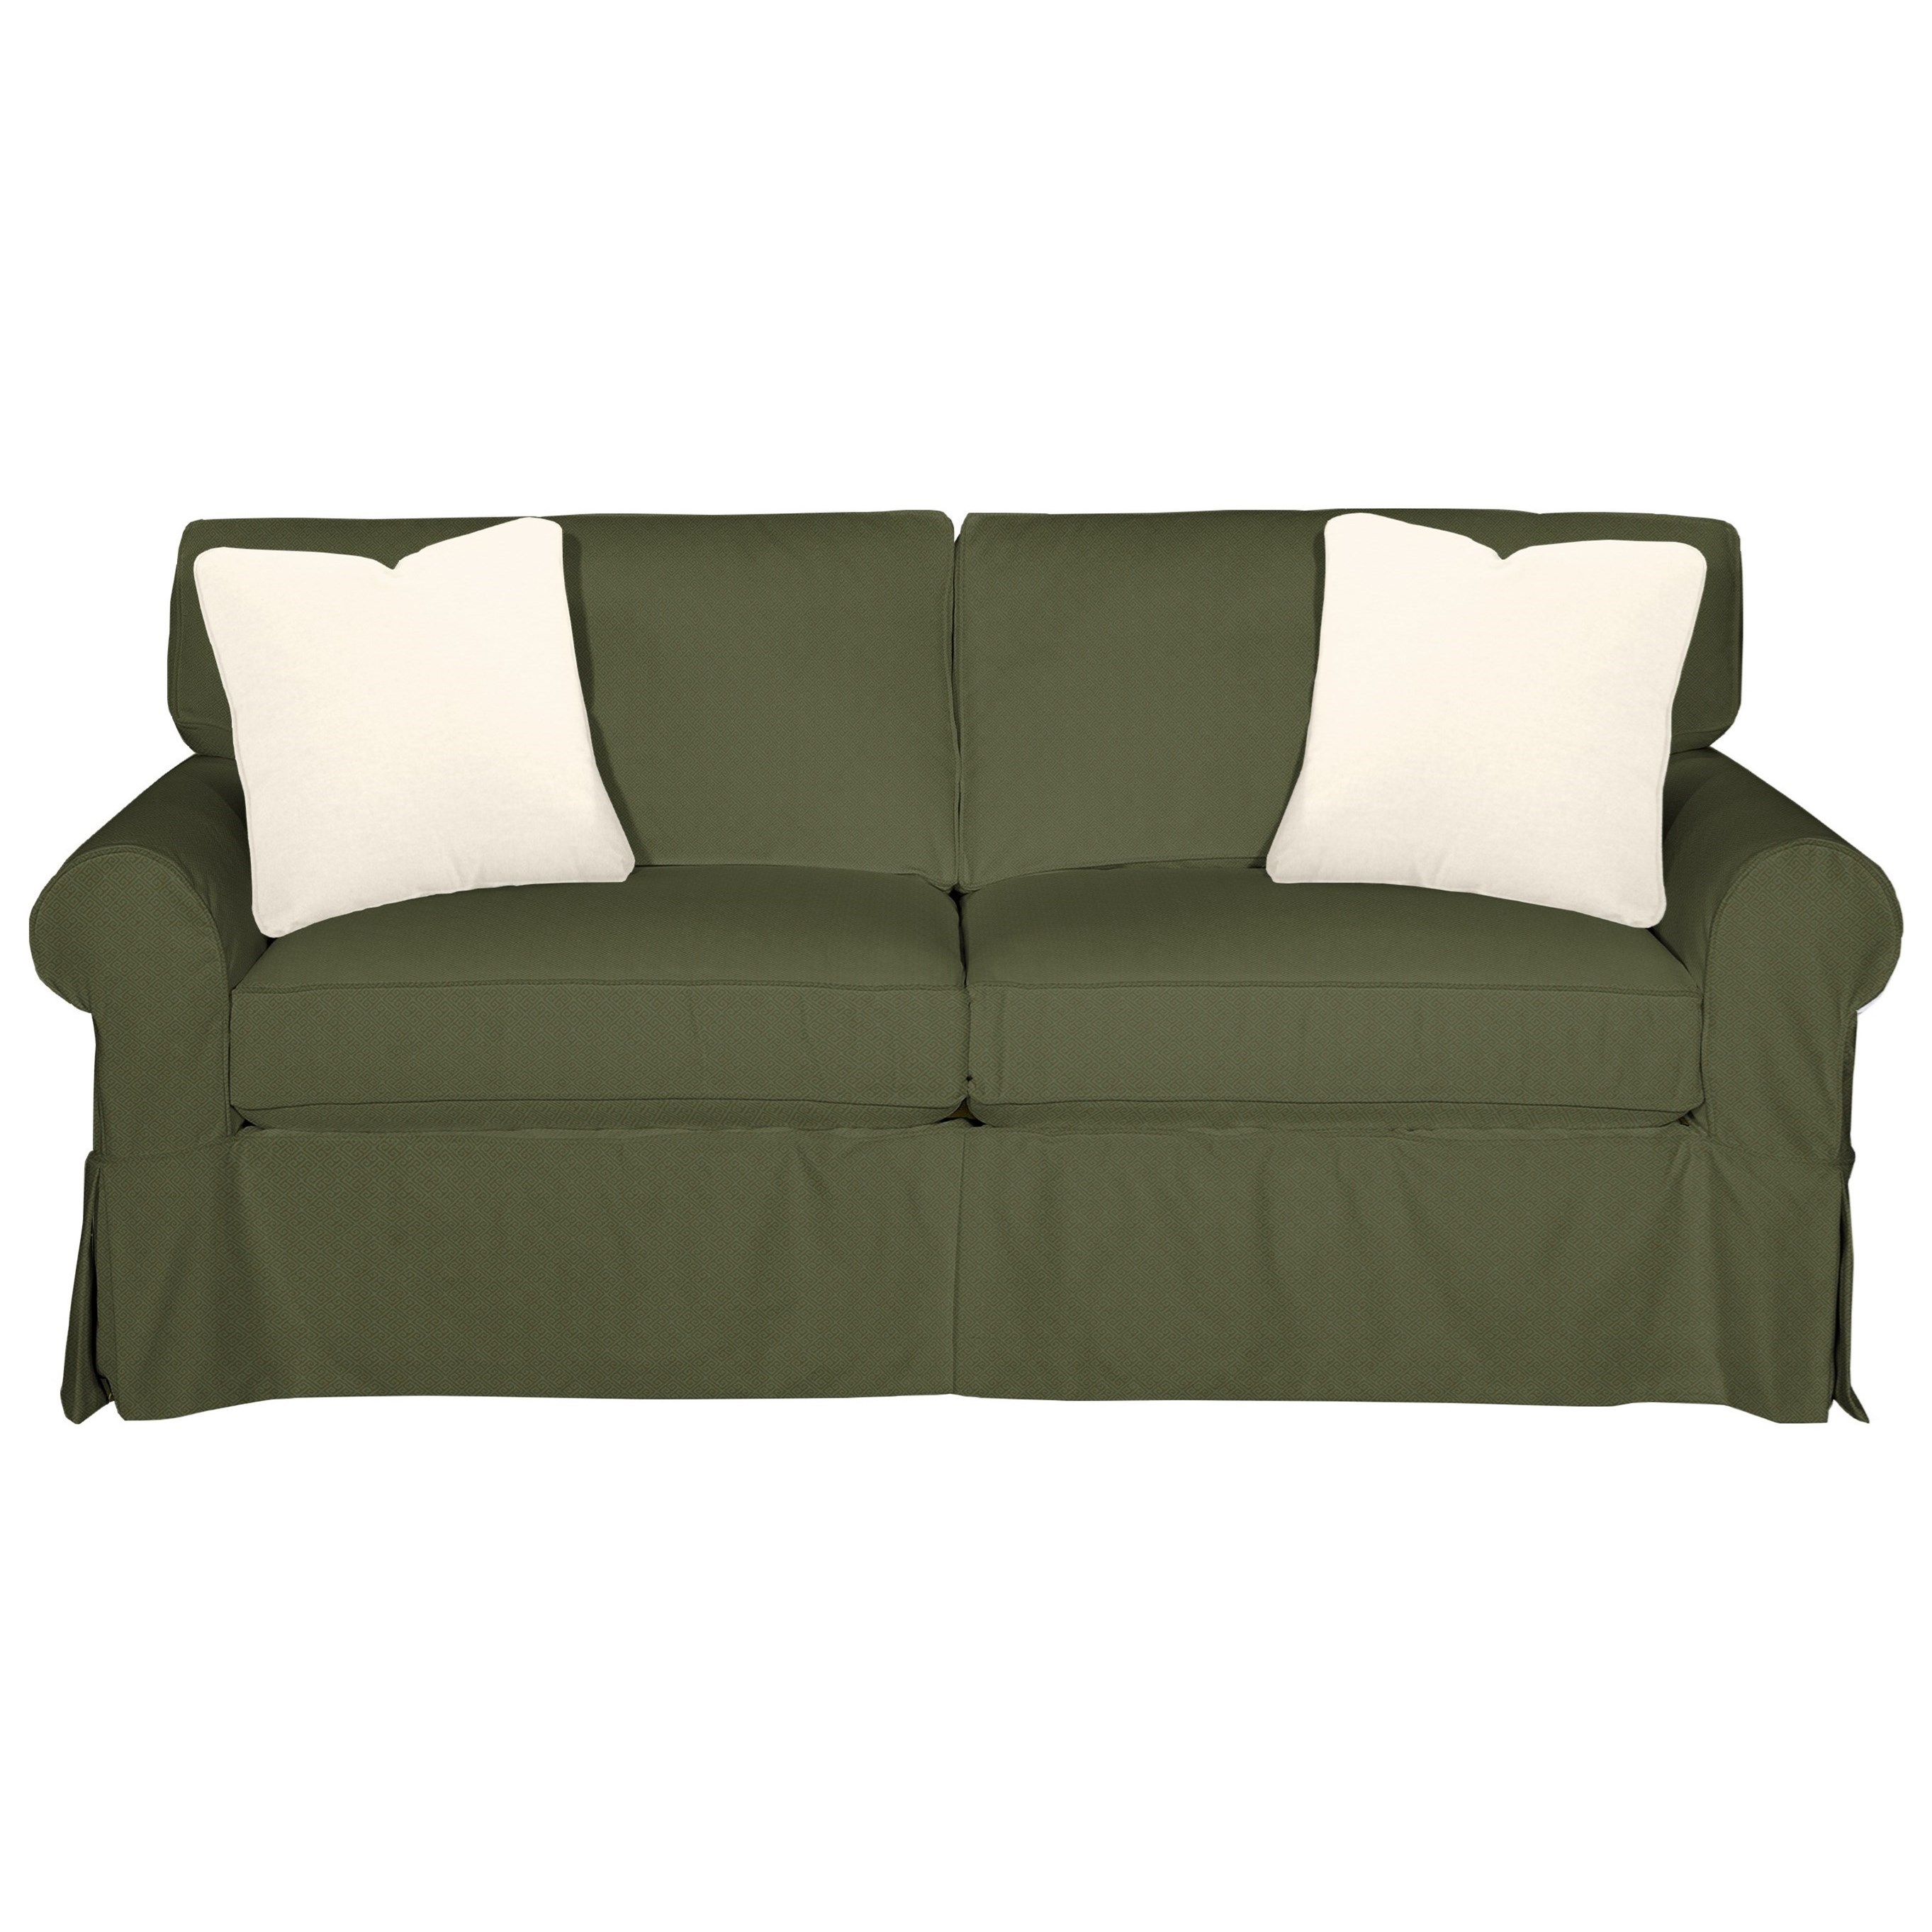 Sleeper Sofa w/ Innerspring Mattress